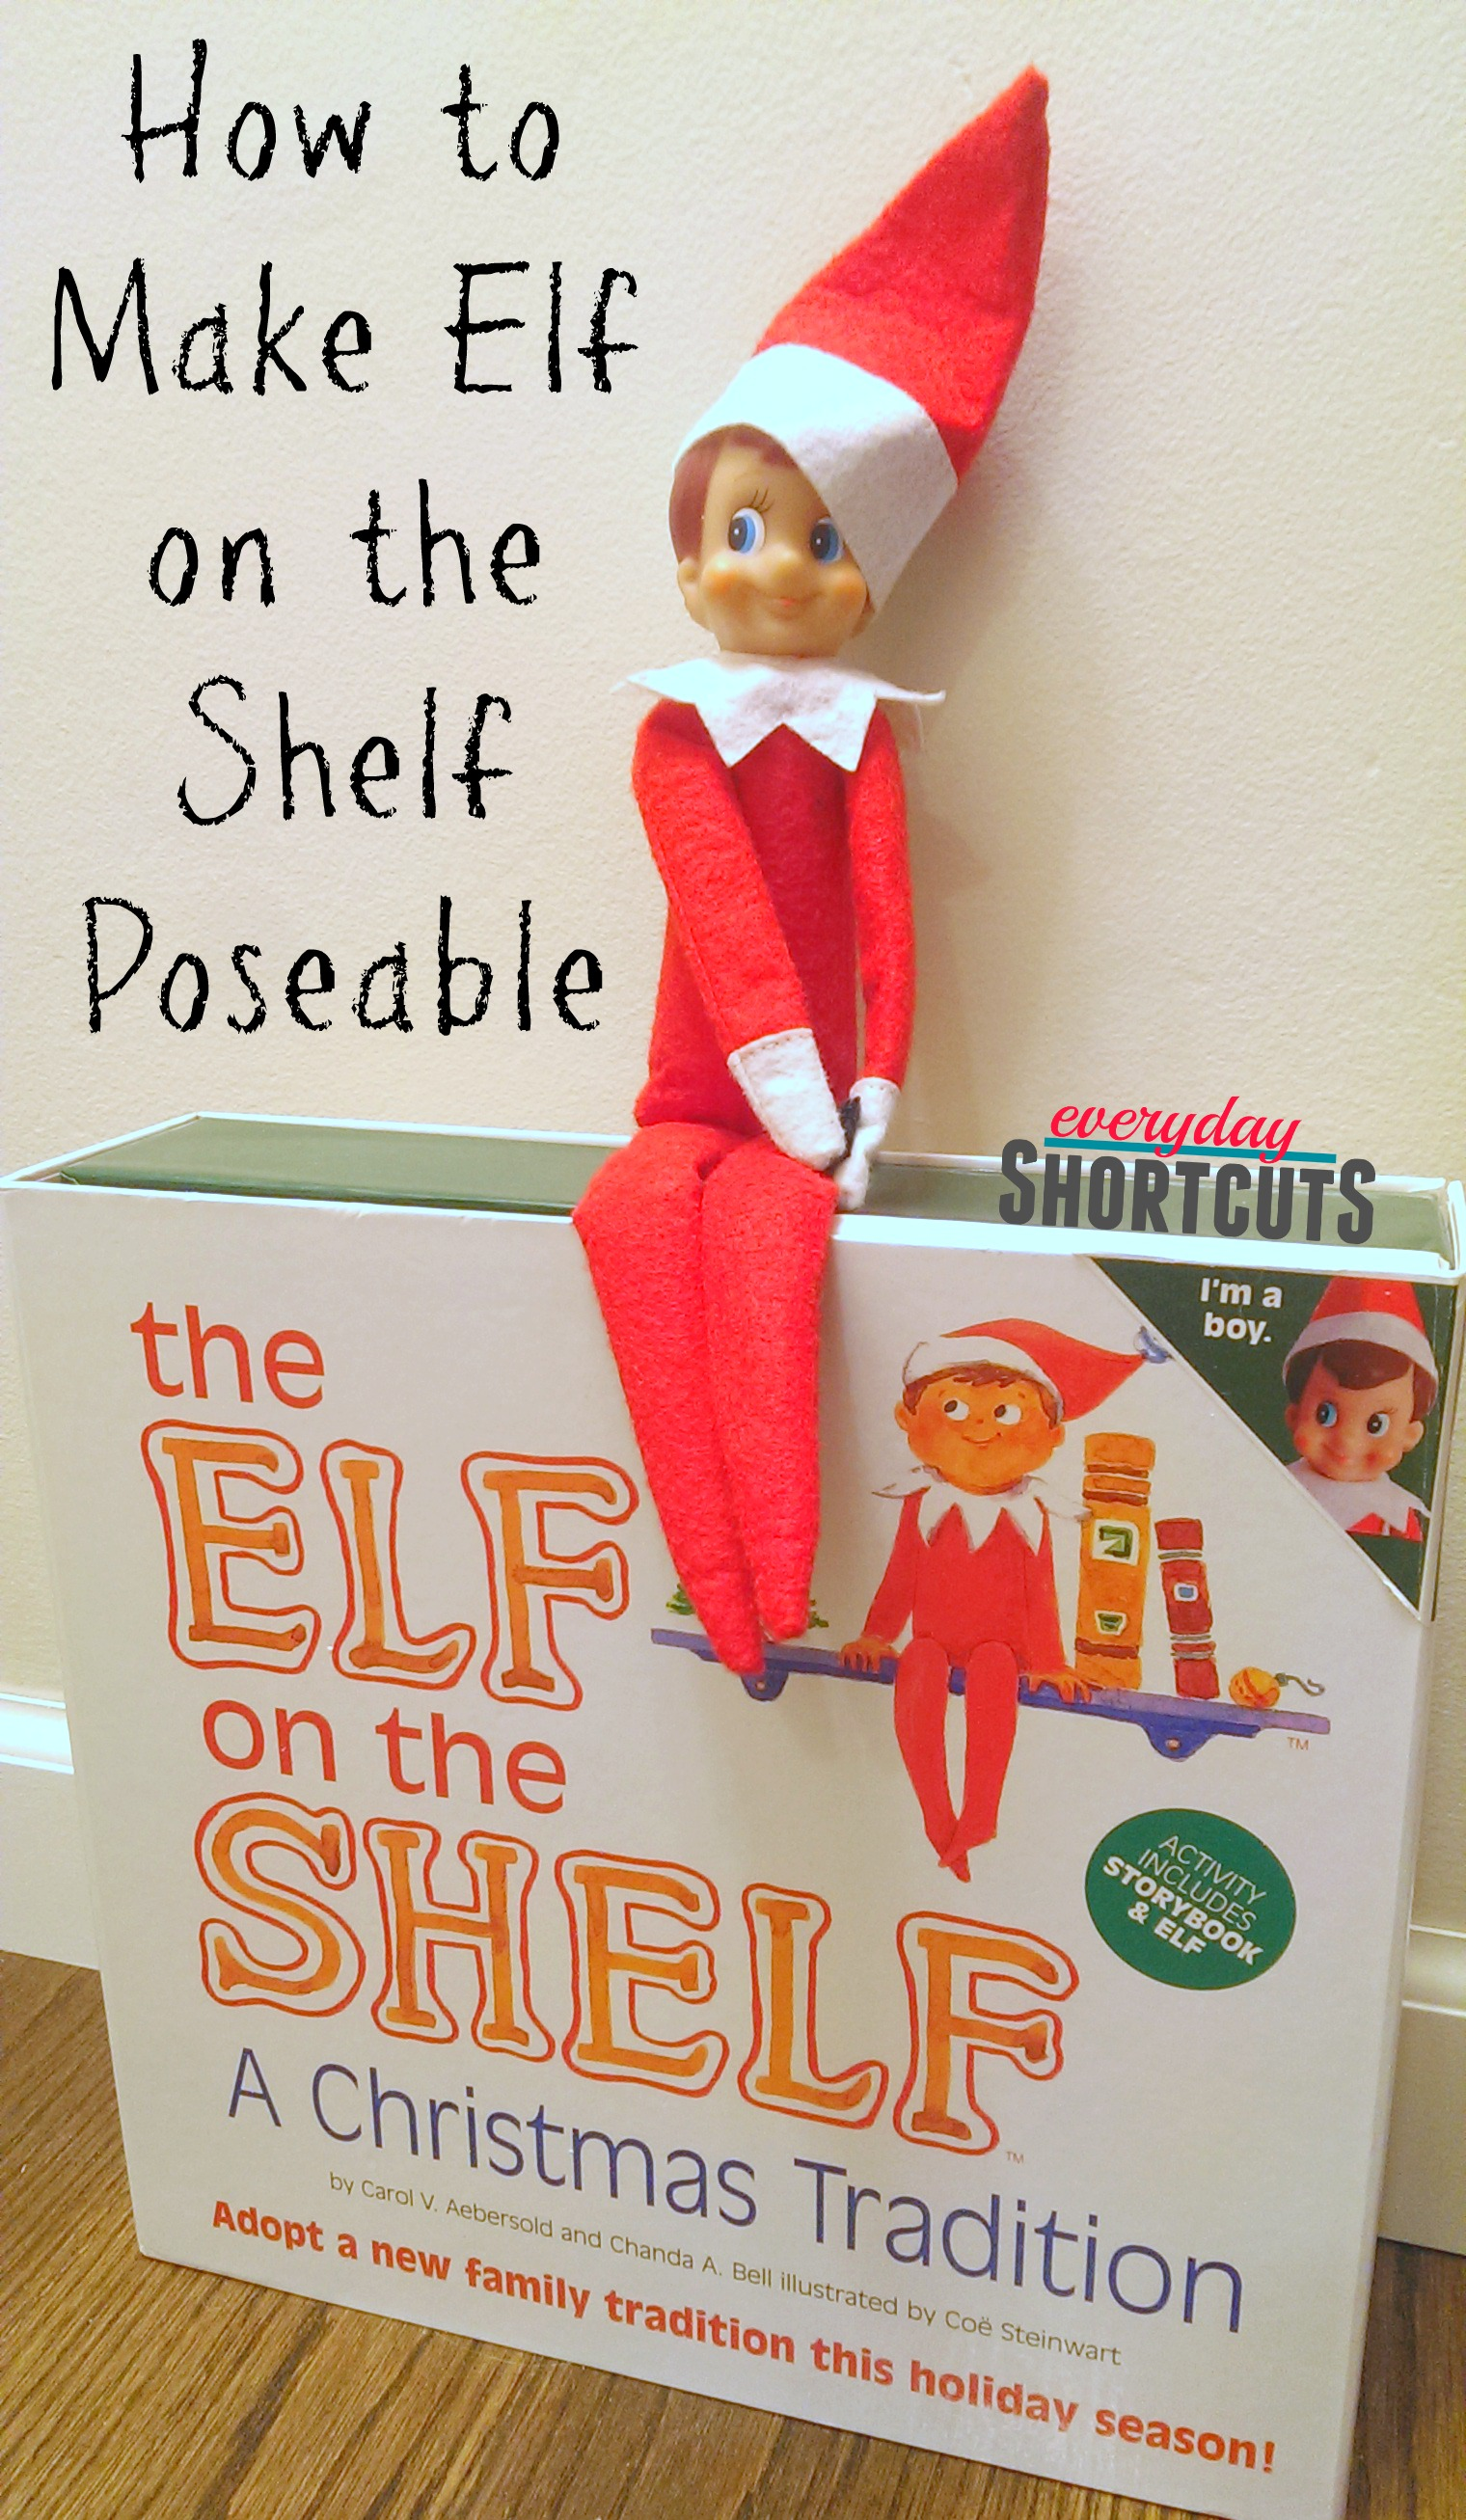 how-to-make-elf-on-the-shelf-poseable